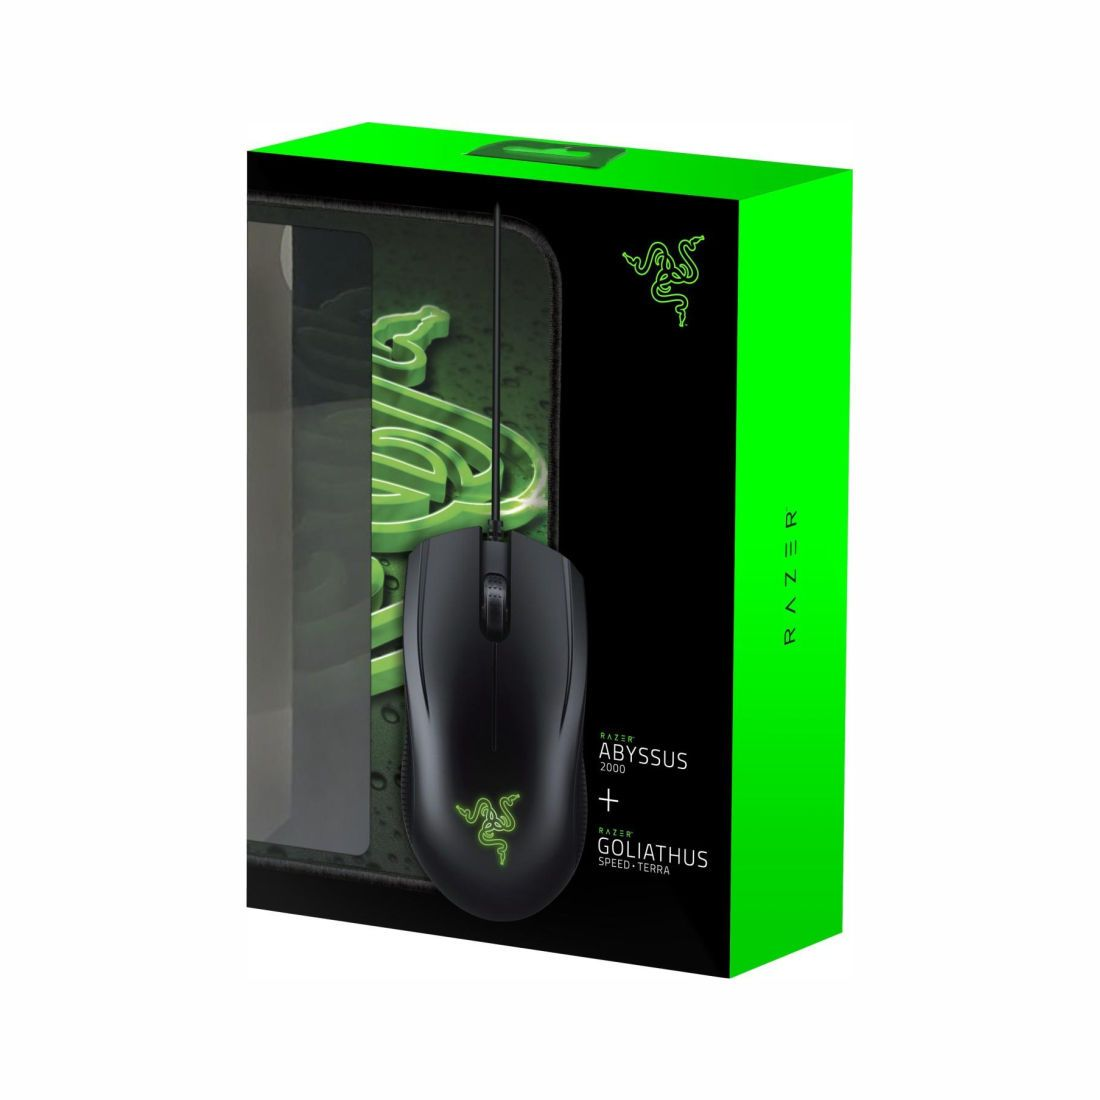 Combo Gamer Mouse Abyssus Green 2000 Dpi + Mouse pad Goliathus - Razer